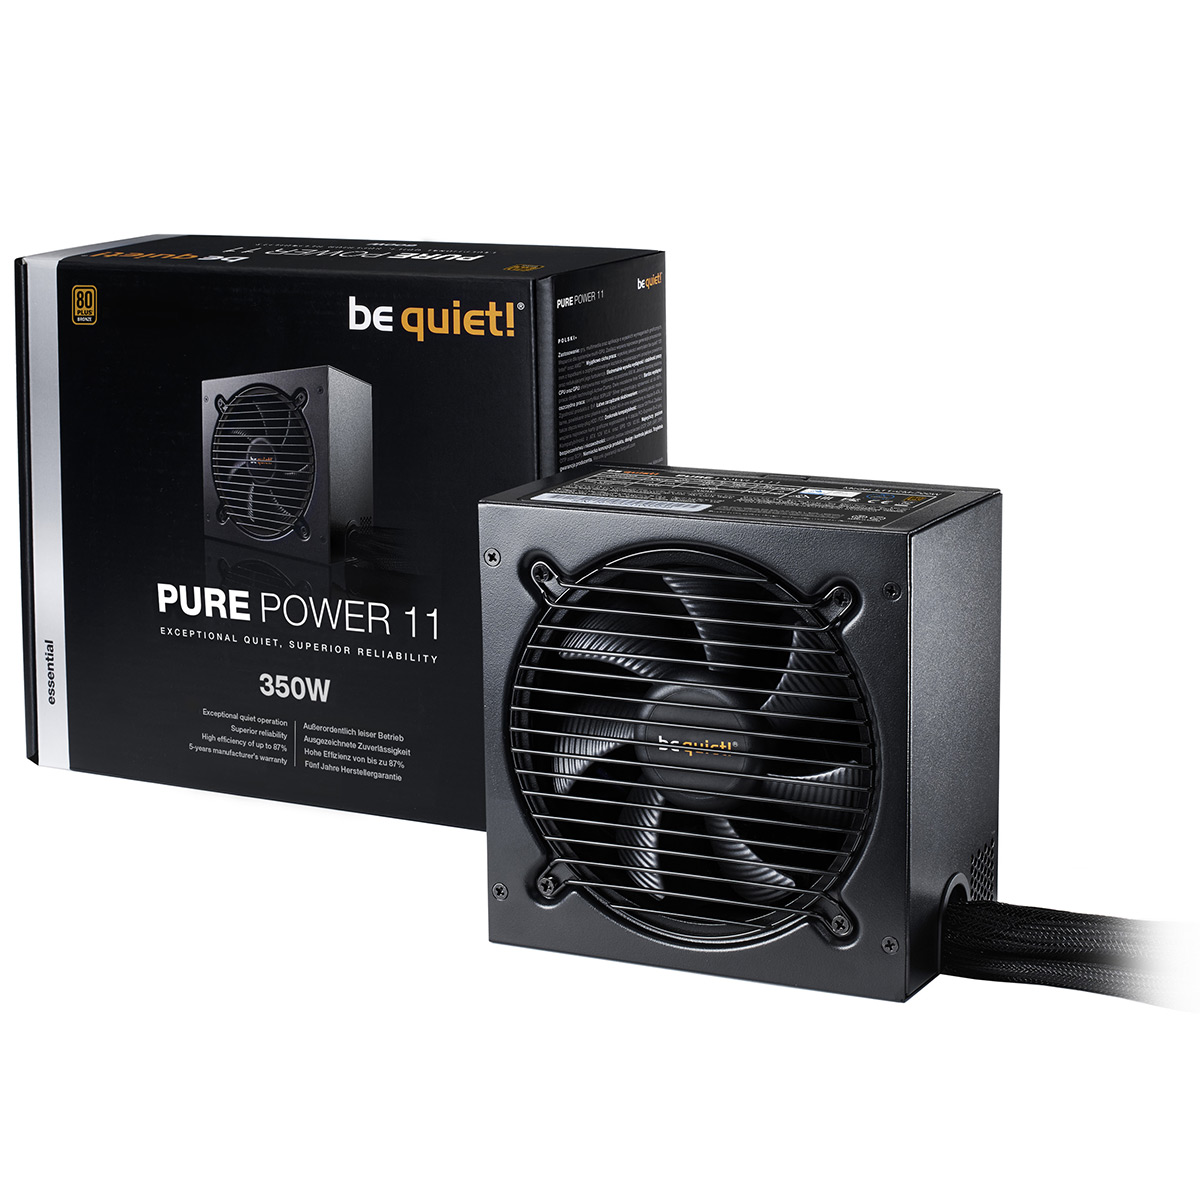 Alimentation PC be quiet! Pure Power 11 350W 80PLUS Bronze Alimentation 350W ATX 12V 2.4 (Garantie 5 ans constructeur) - 80PLUS Bronze